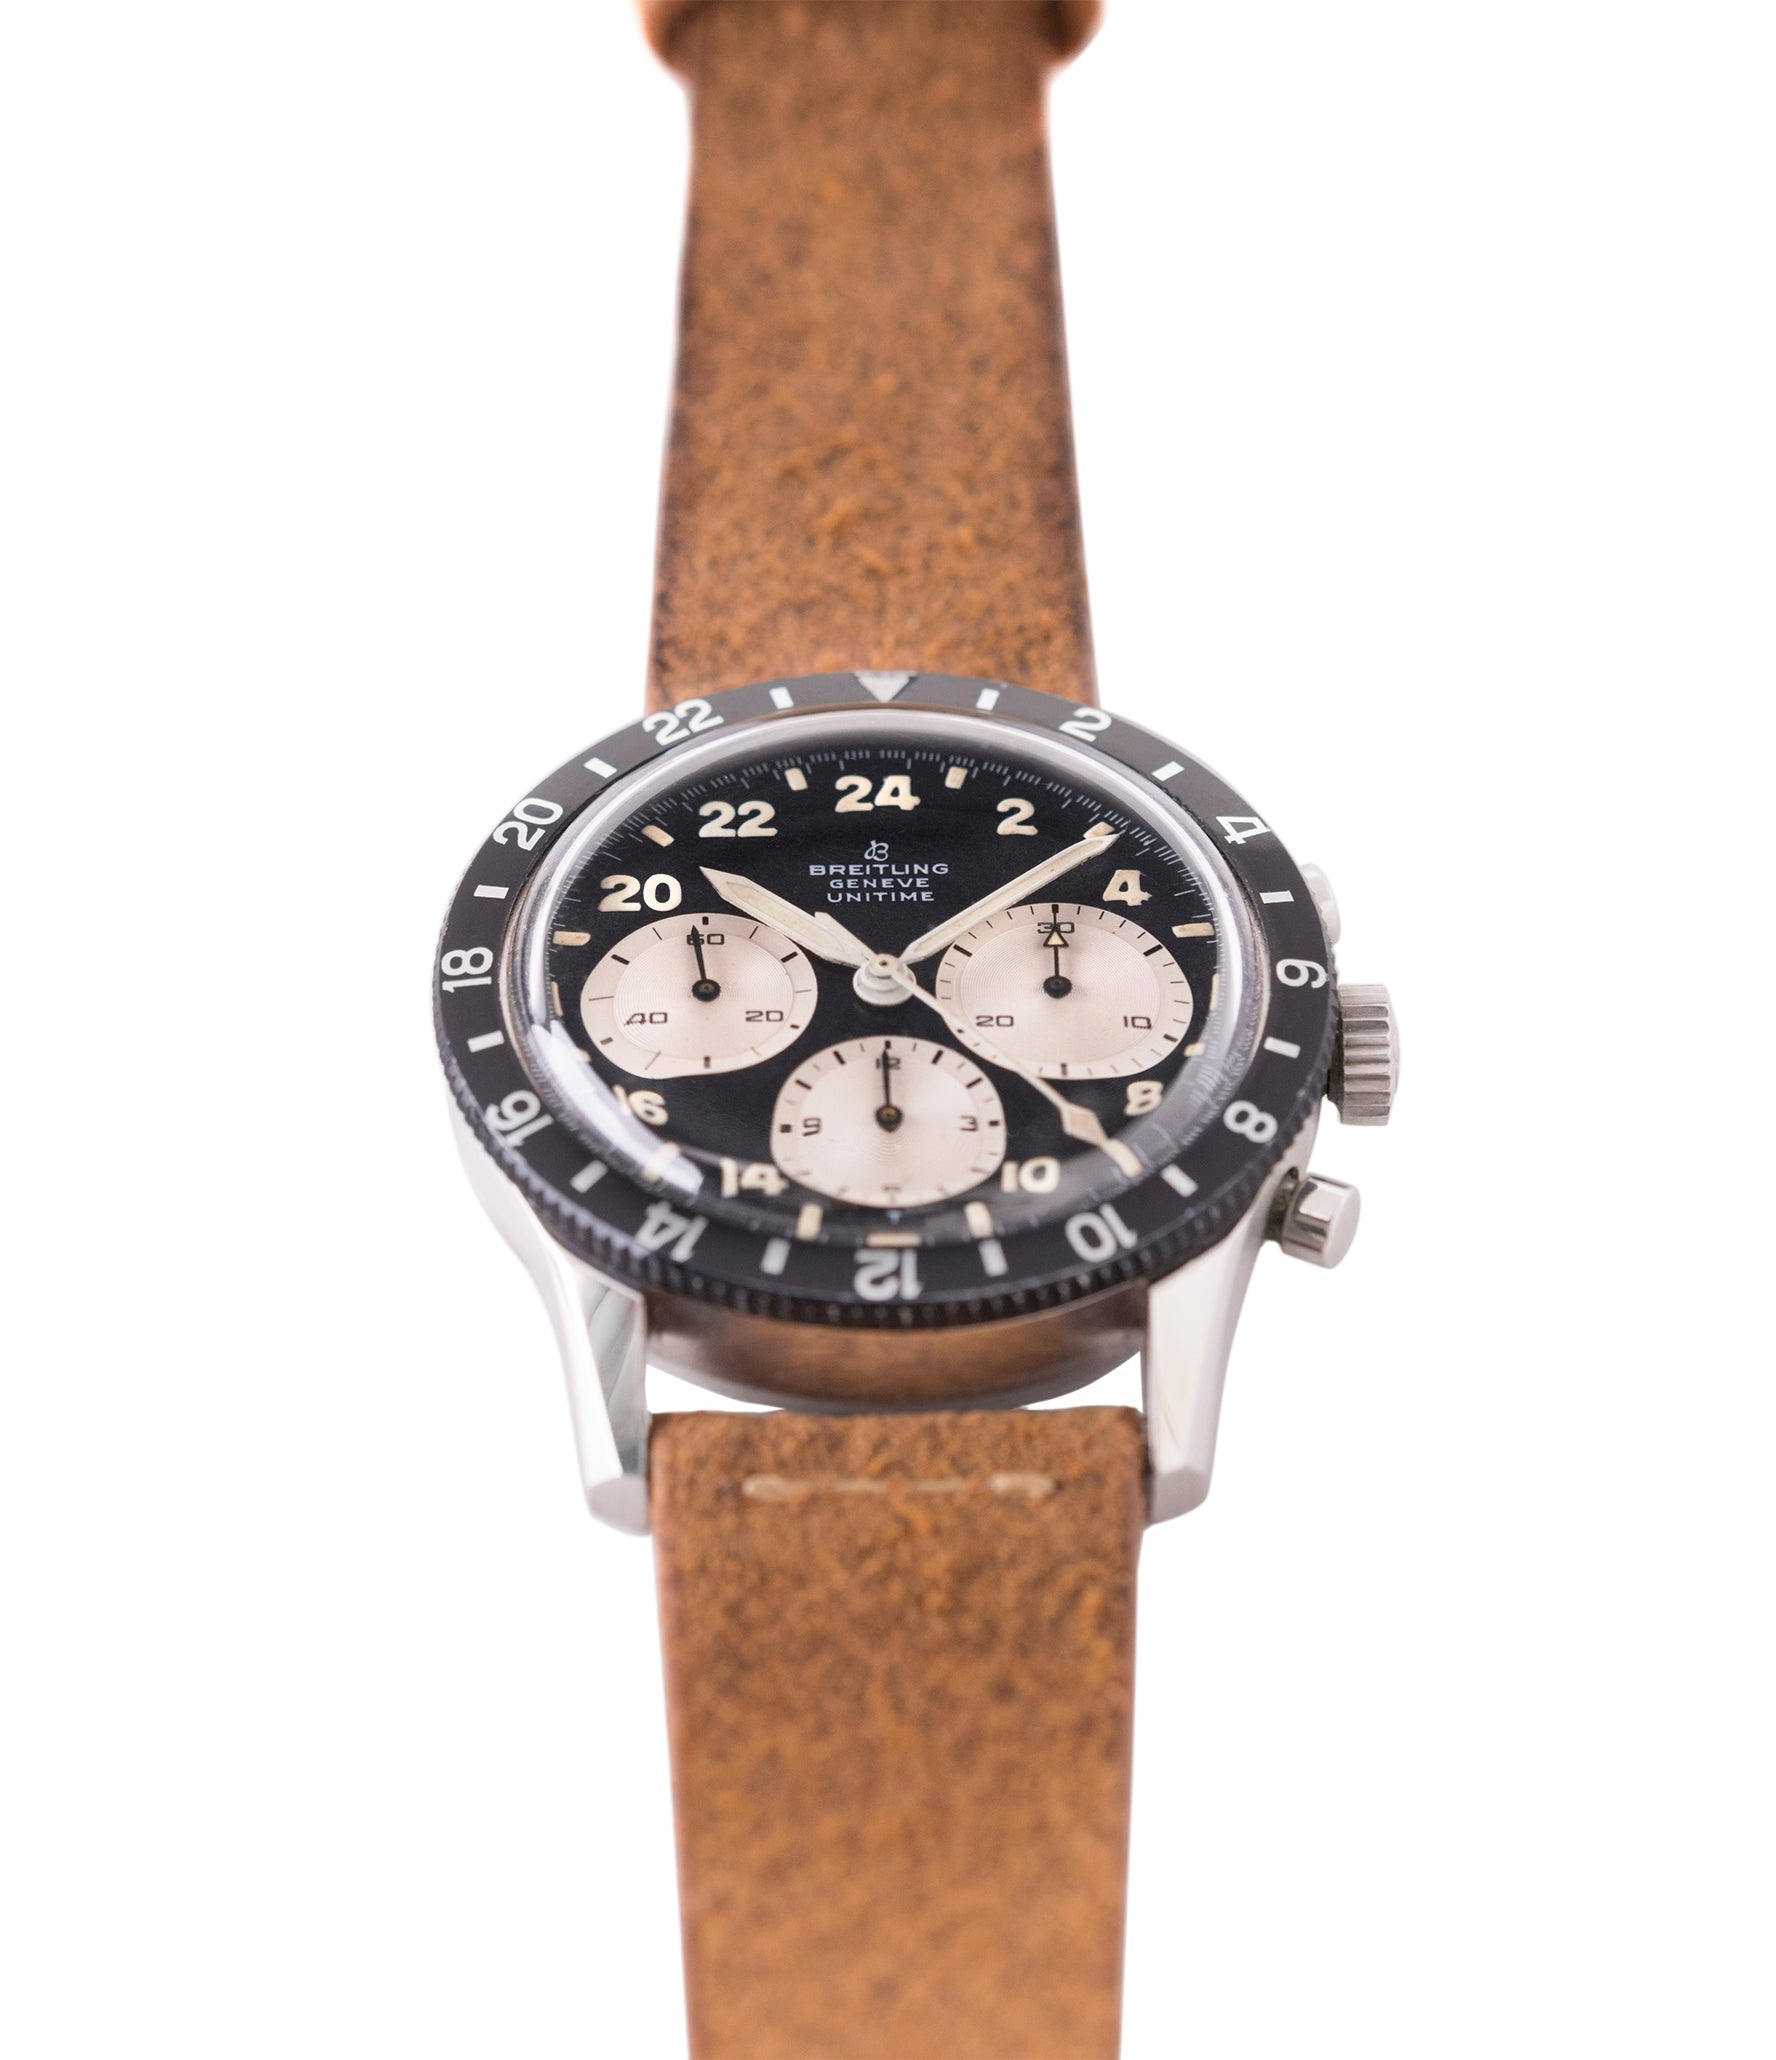 Breitling 1765 Unitime steel vintage Cal. 178 pilot watch for sale online at A Collected Man London UK specialist of rare watches